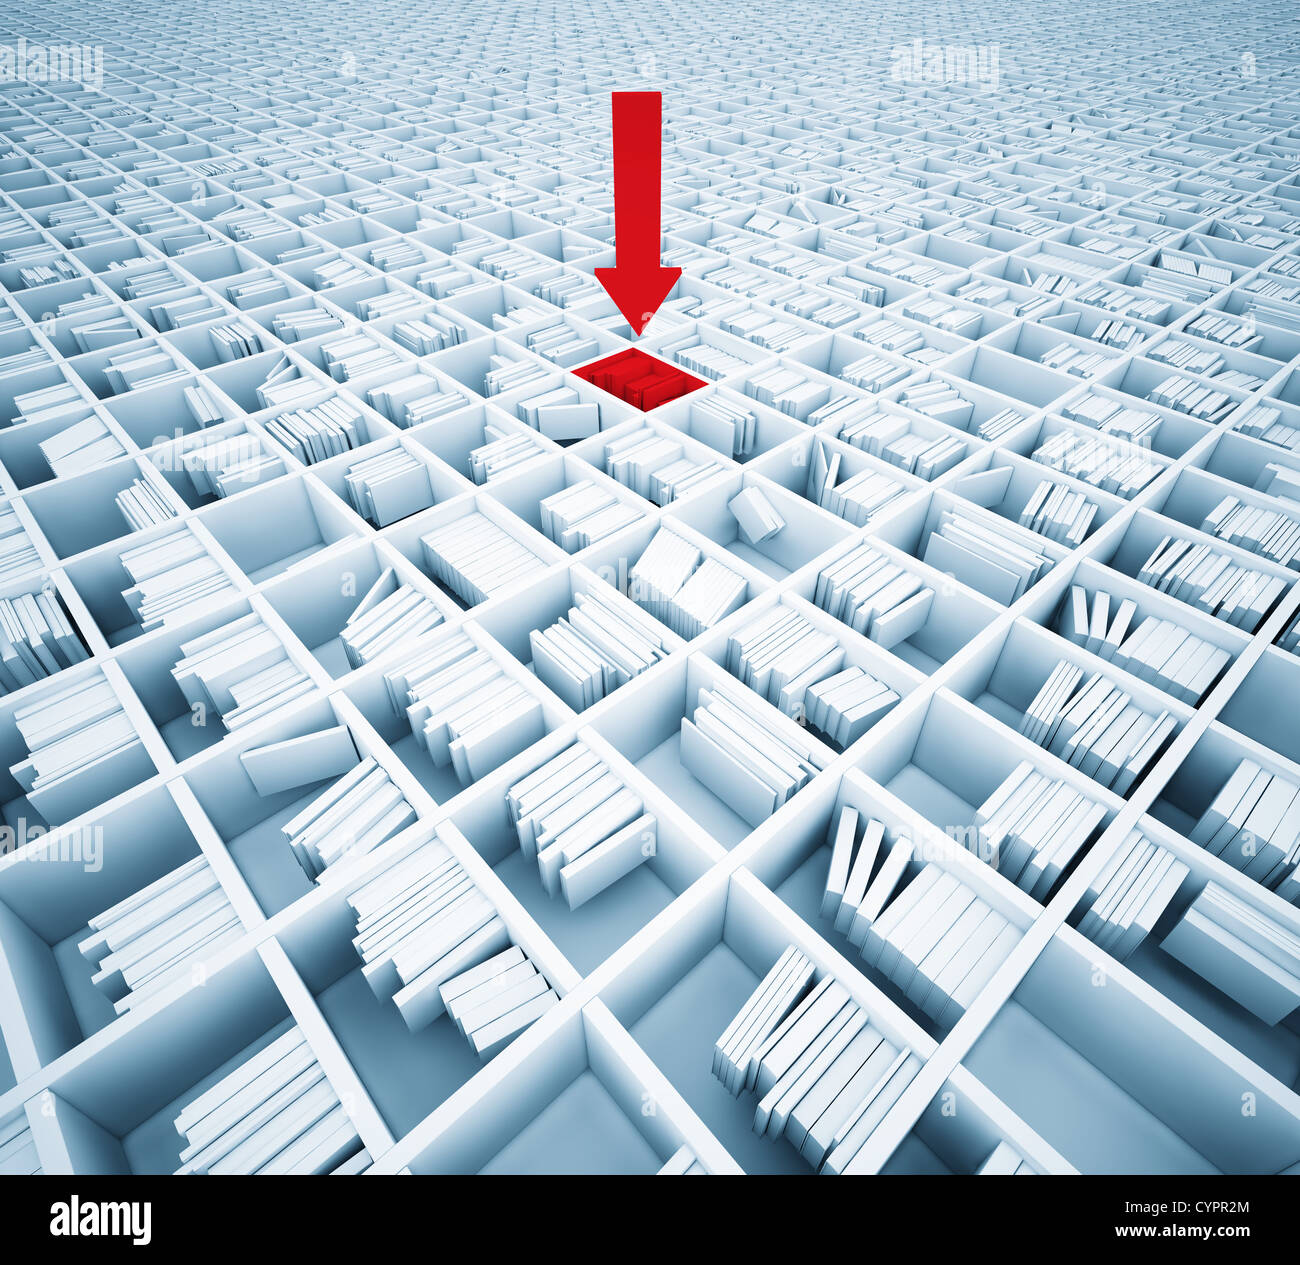 searching information in matrix of bookshelfs ( illustration concept) Stock Photo